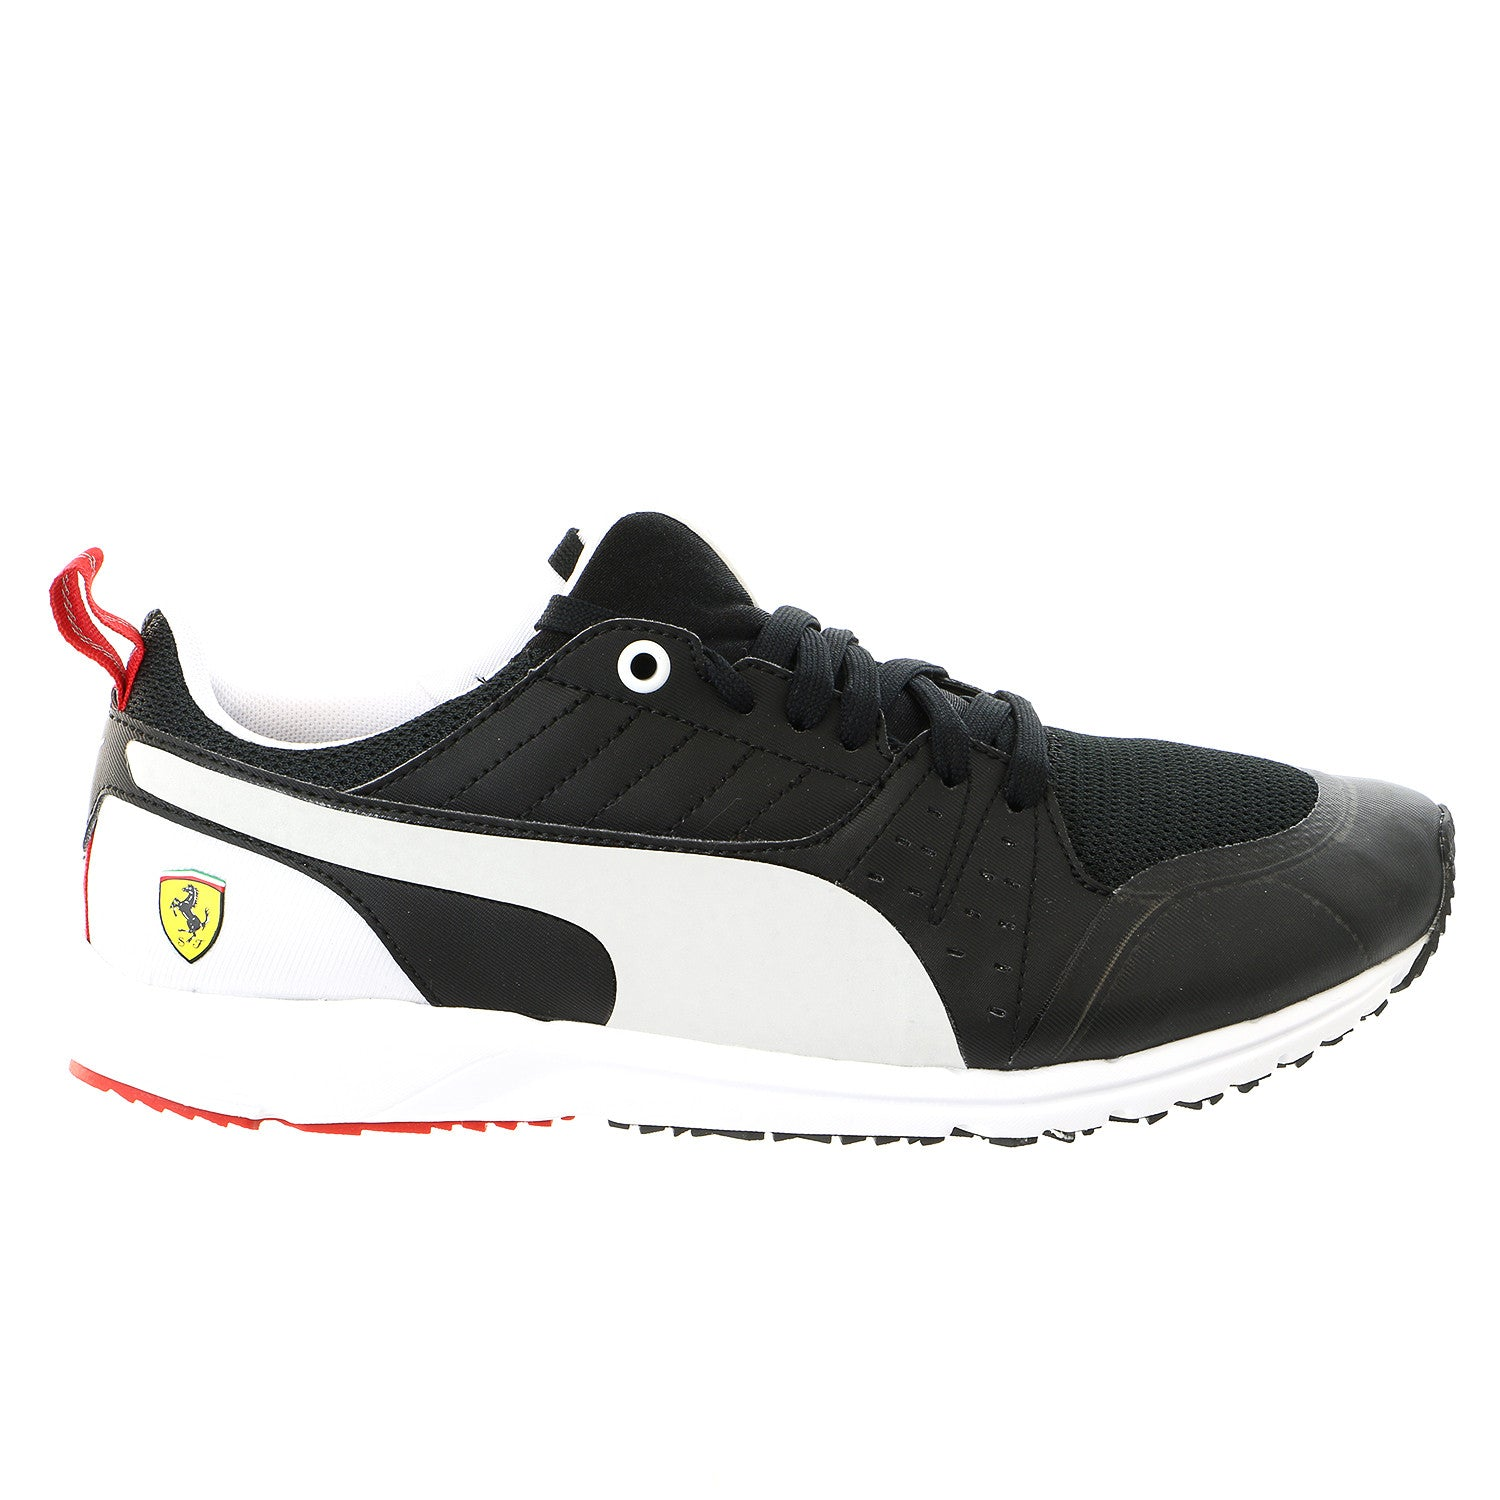 Ferrari puma shoes black photo recommend dress for everyday in 2019